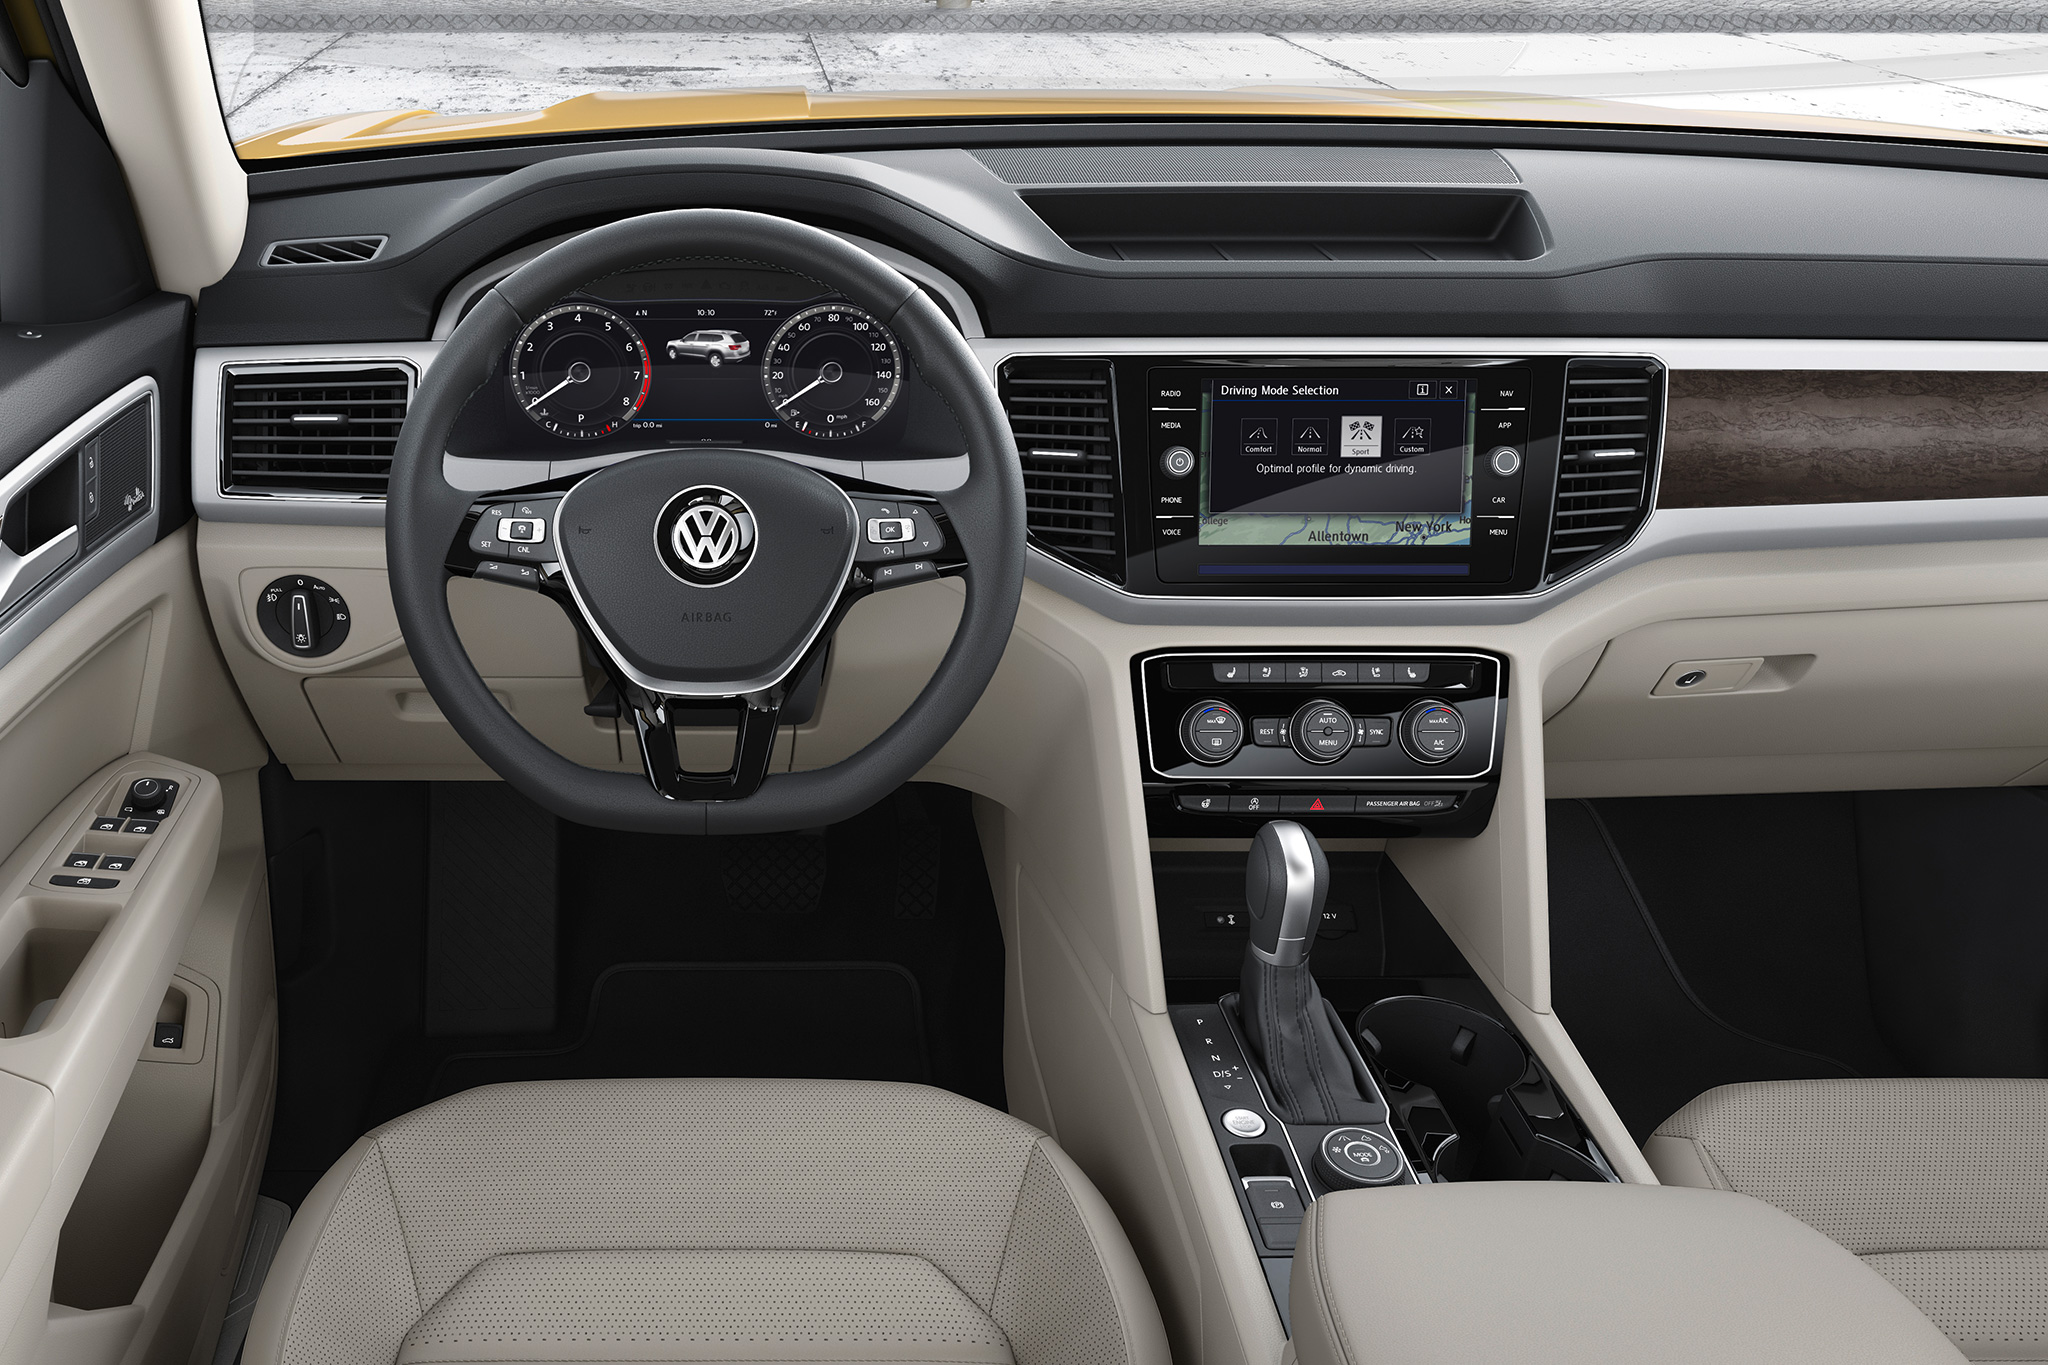 2018-Volkswagen-Atlas-dashboard